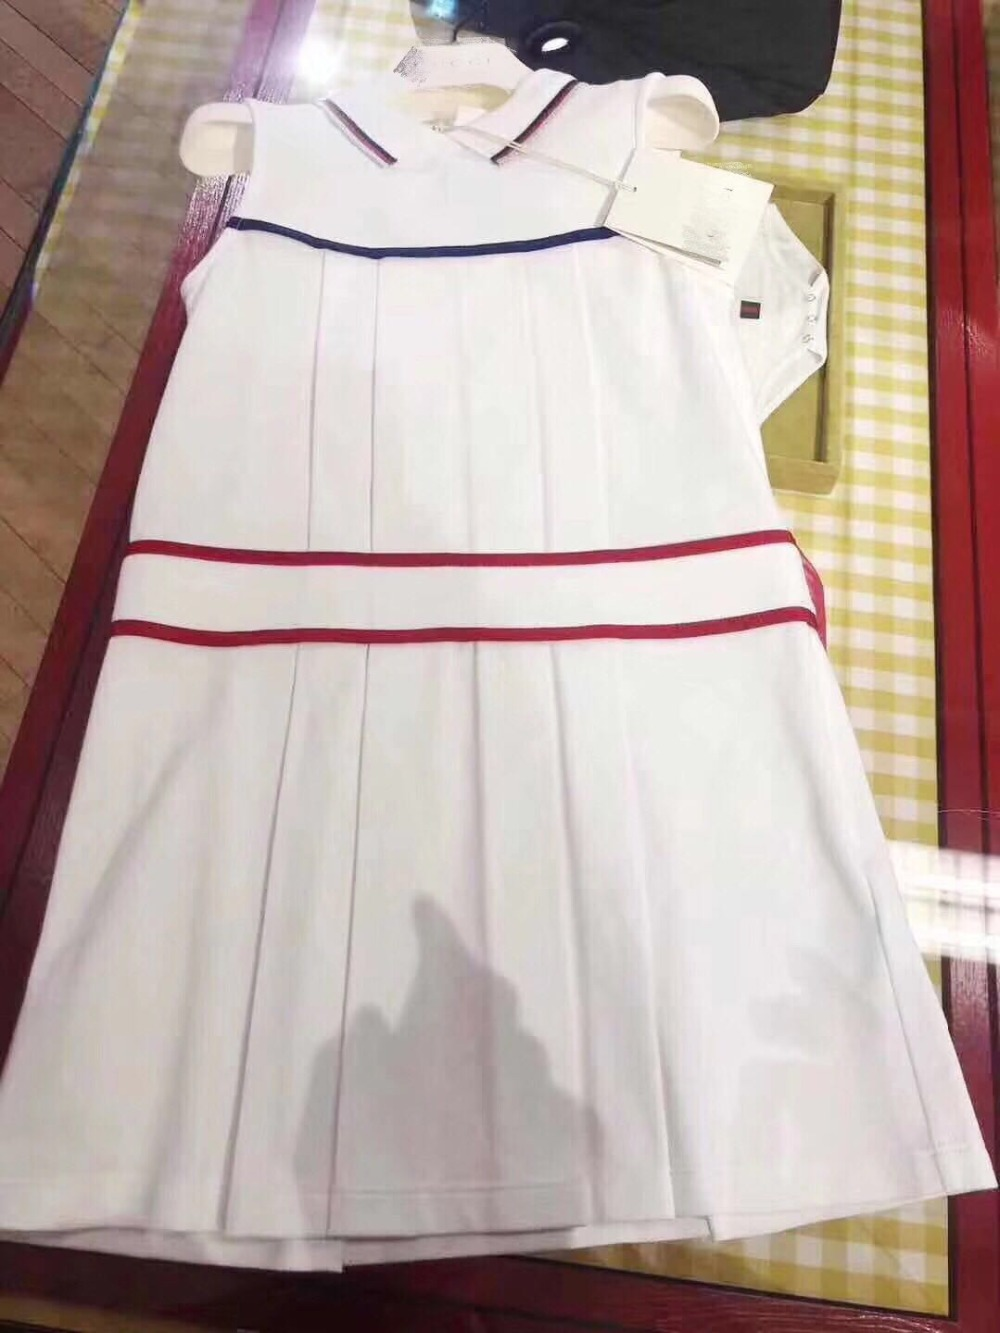 2019 New Summer Fashion Solid White Polocolar Dress Collage School Style BabyGirls Dress Boutique For Girls Clothing Pretticoat